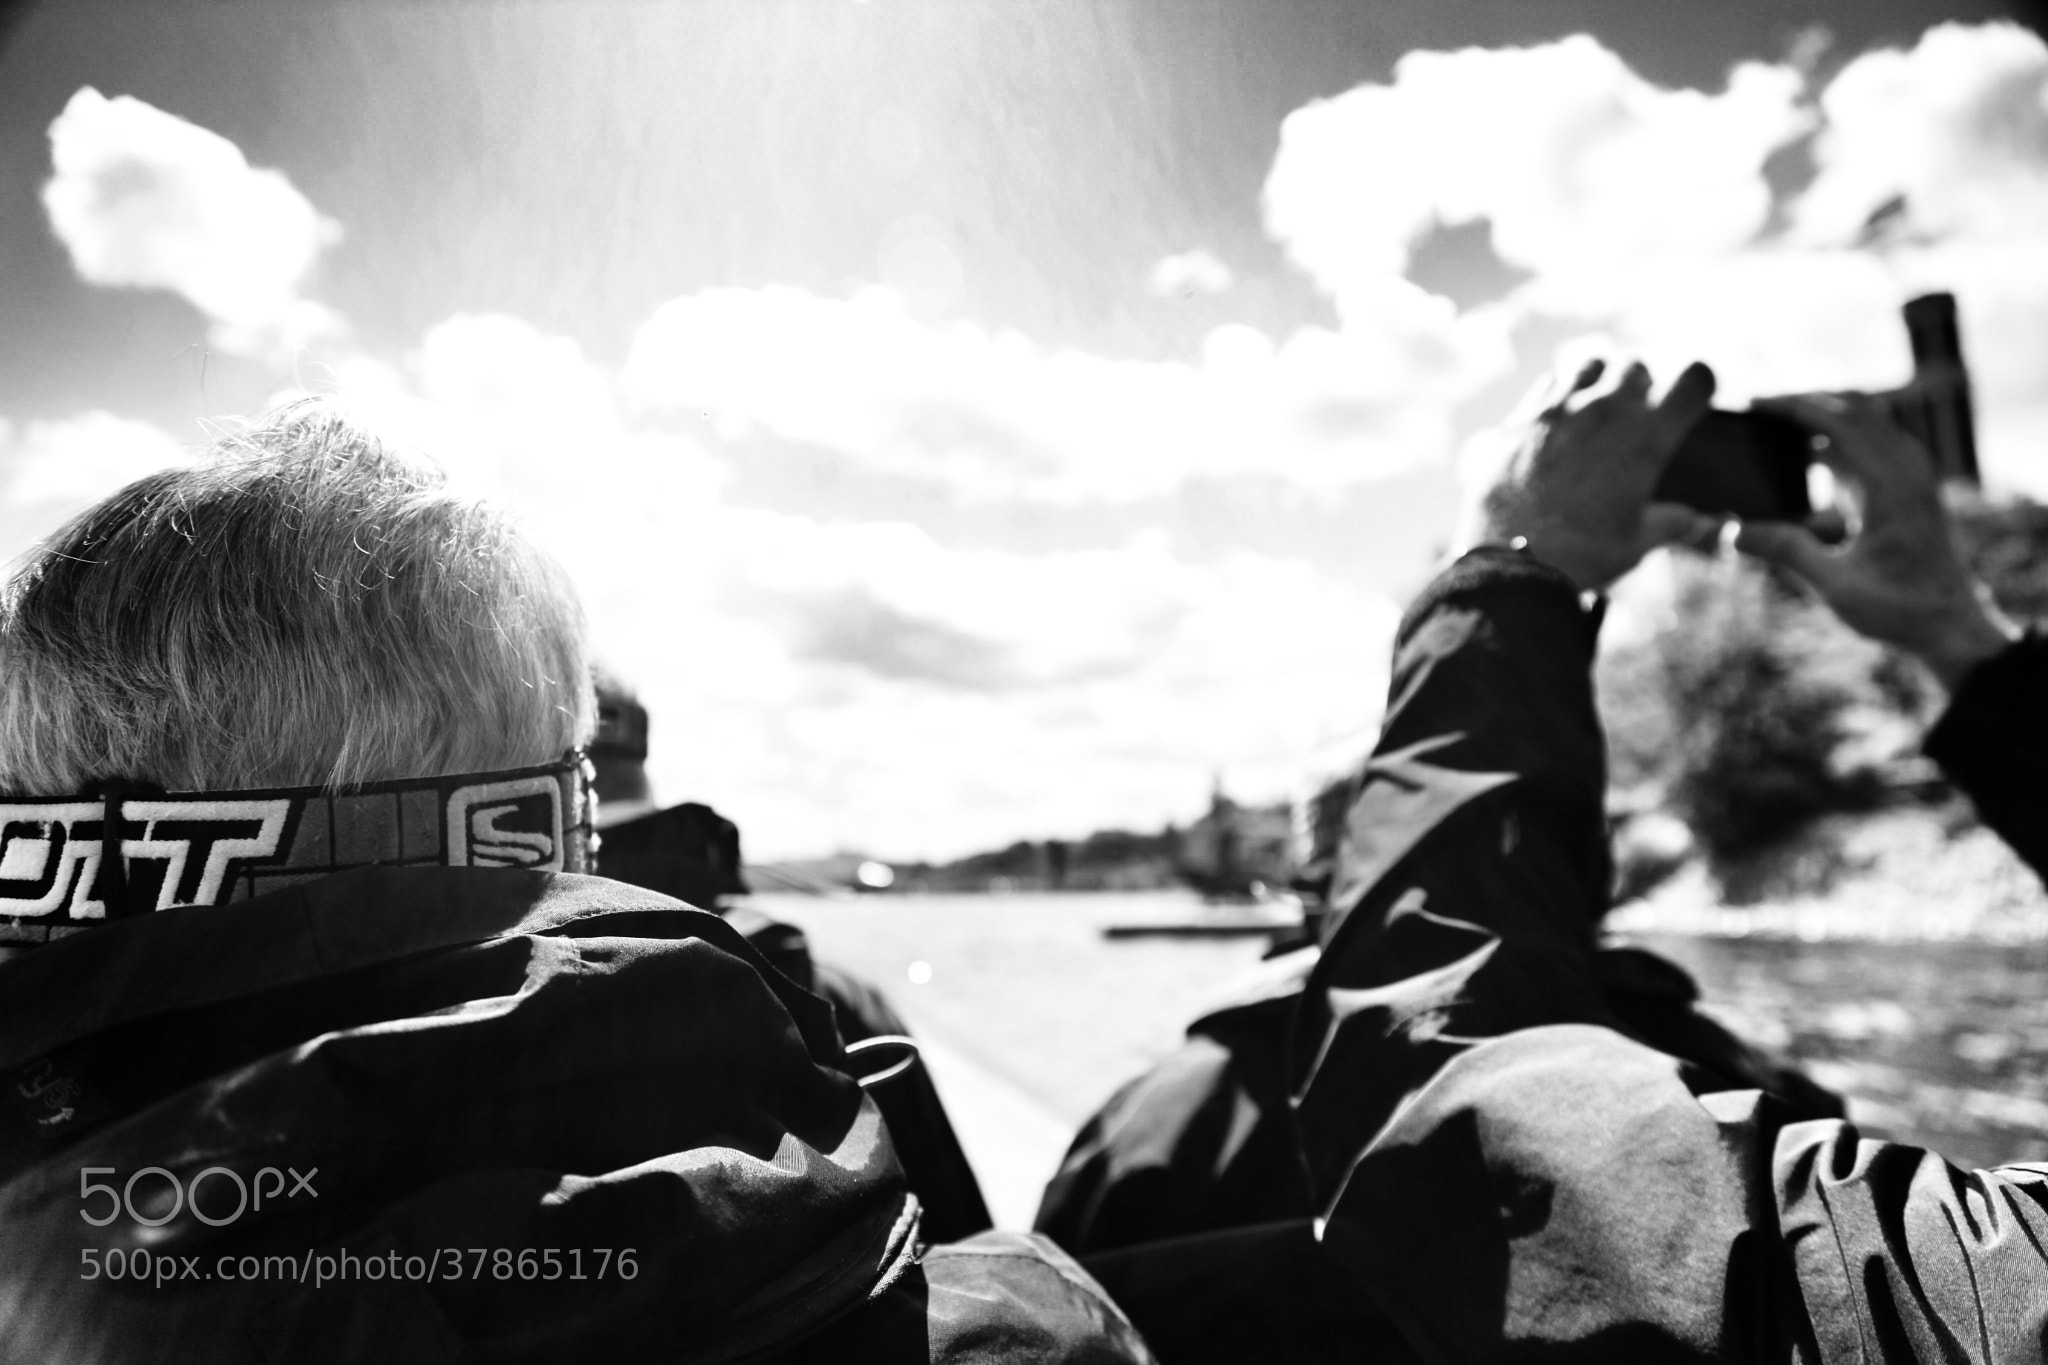 Photograph Boat Ride by Sir G on 500px